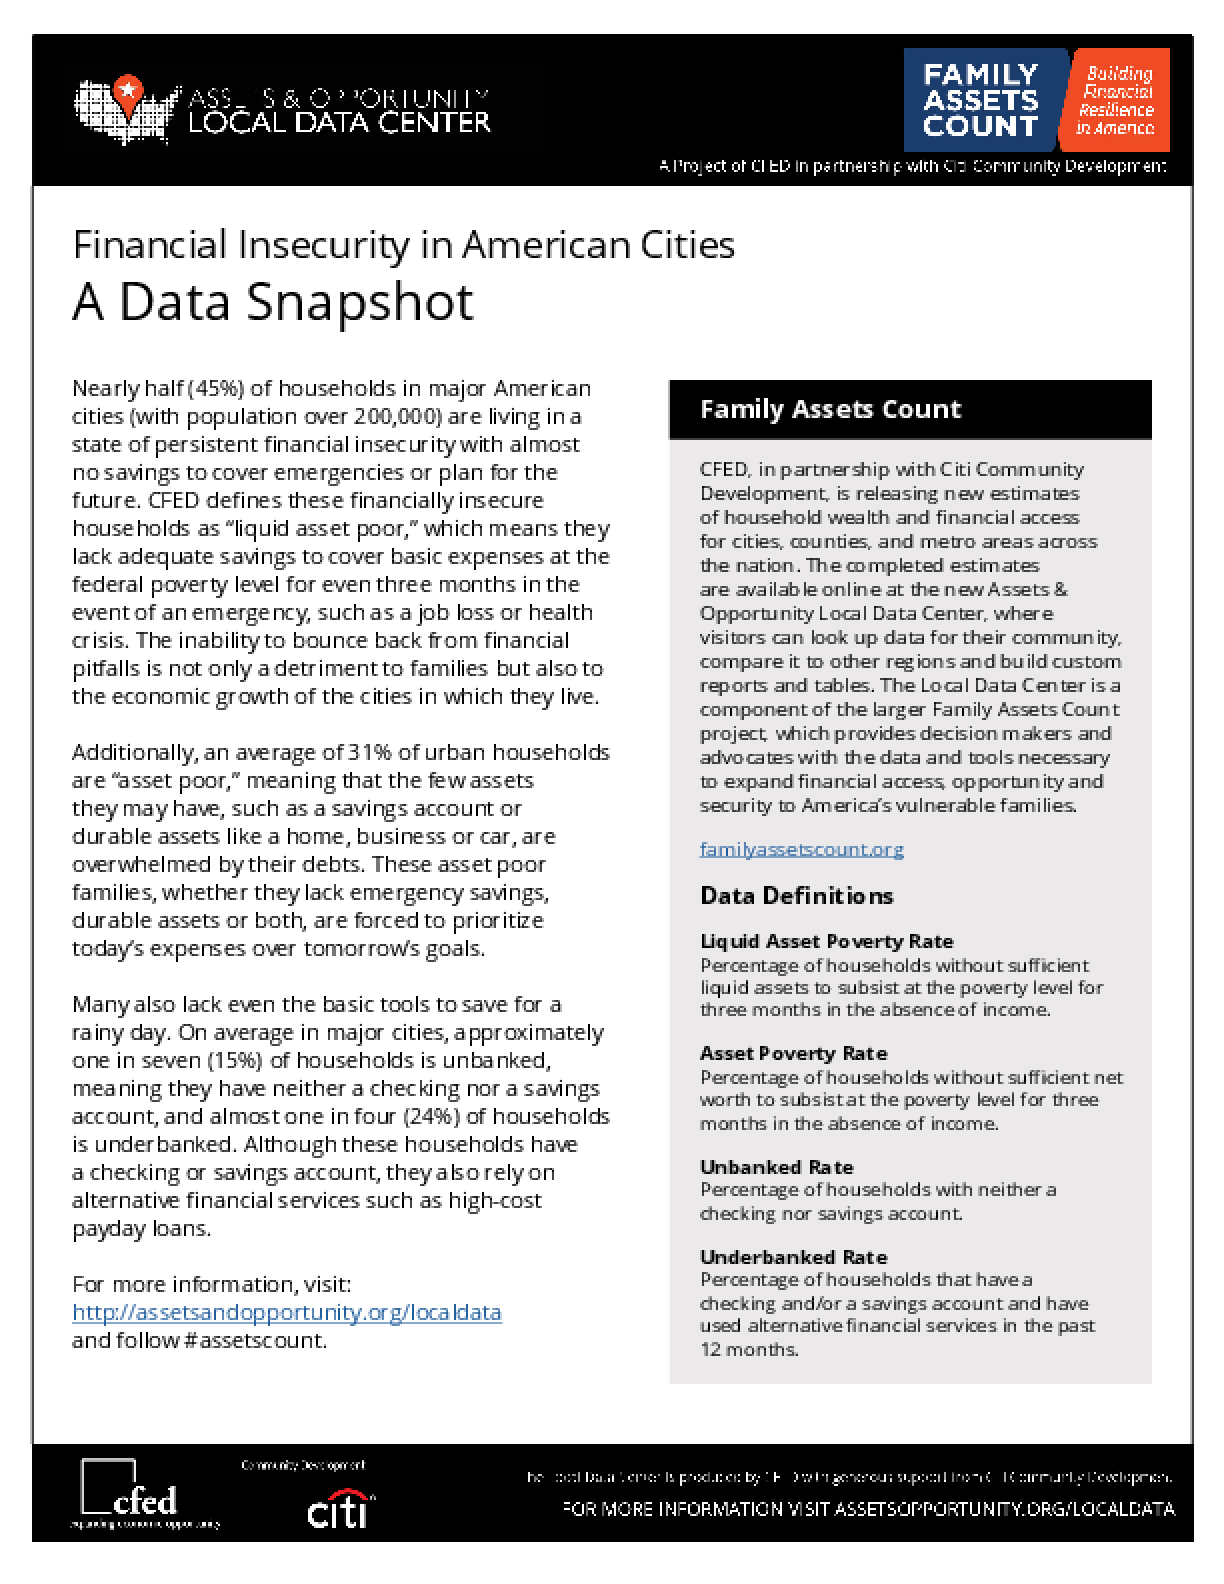 Financial Insecurity in American Cities: A Data Snapshot